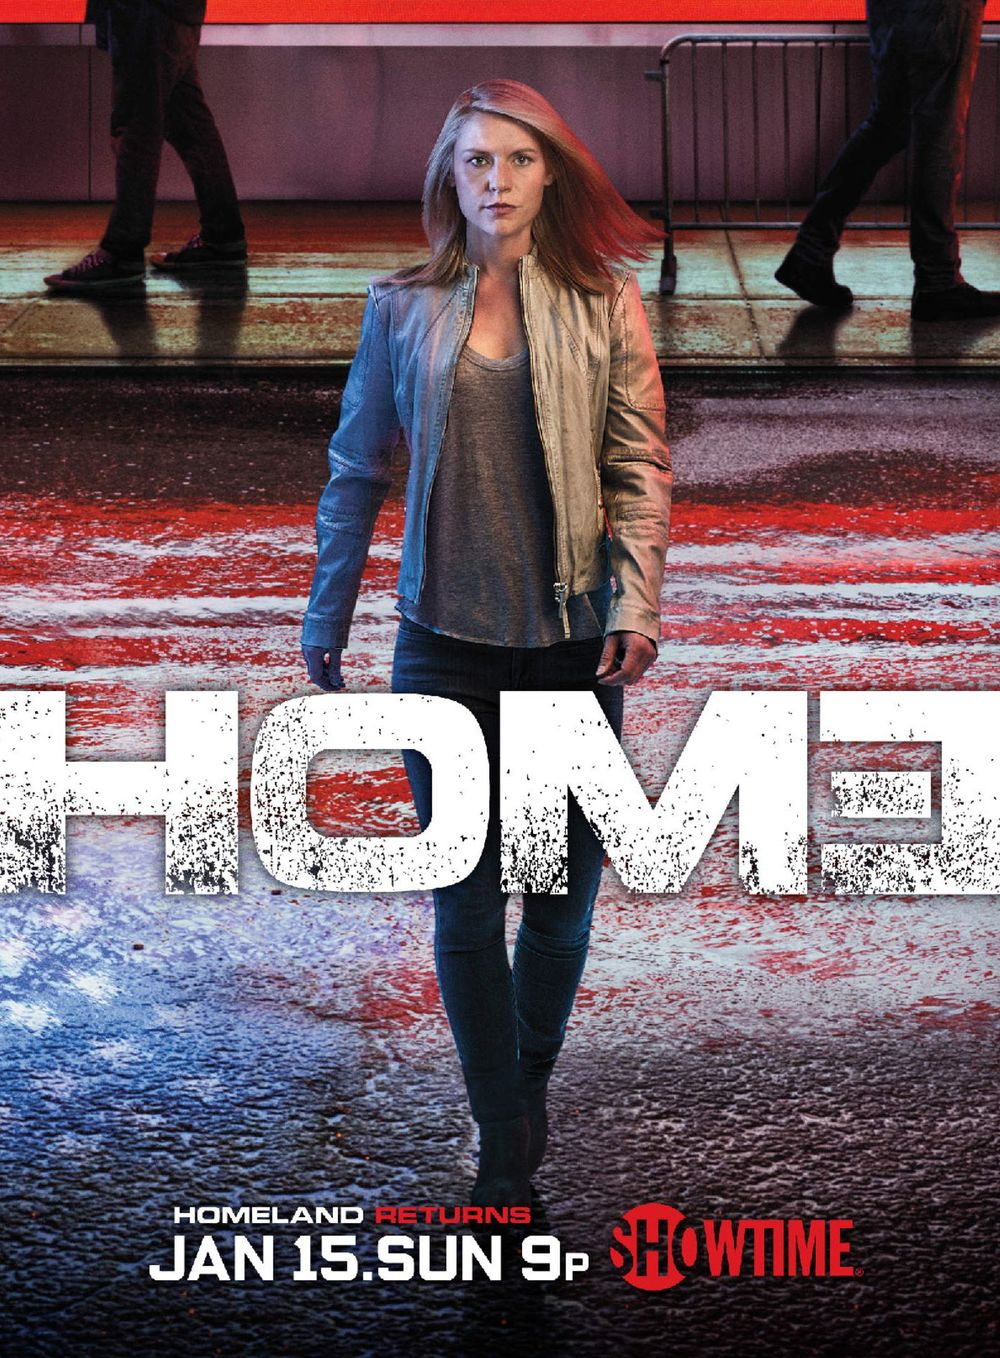 ben watches television : homeland, season 6 (2017) — dead end follies